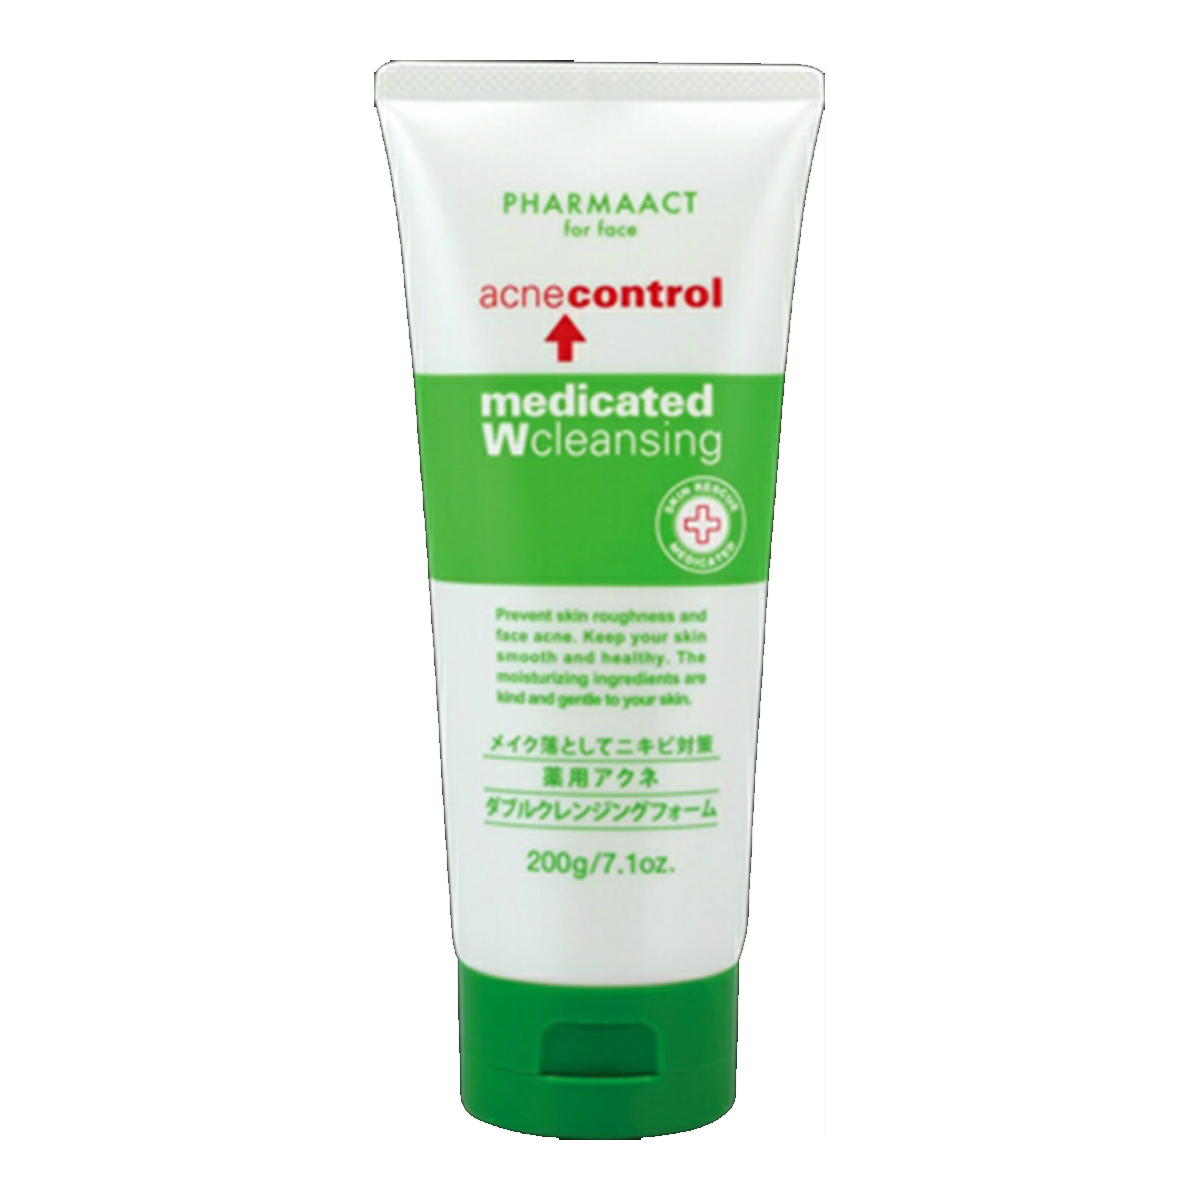 Pharma Act medicated acne W cleansing foam (4513574021396)